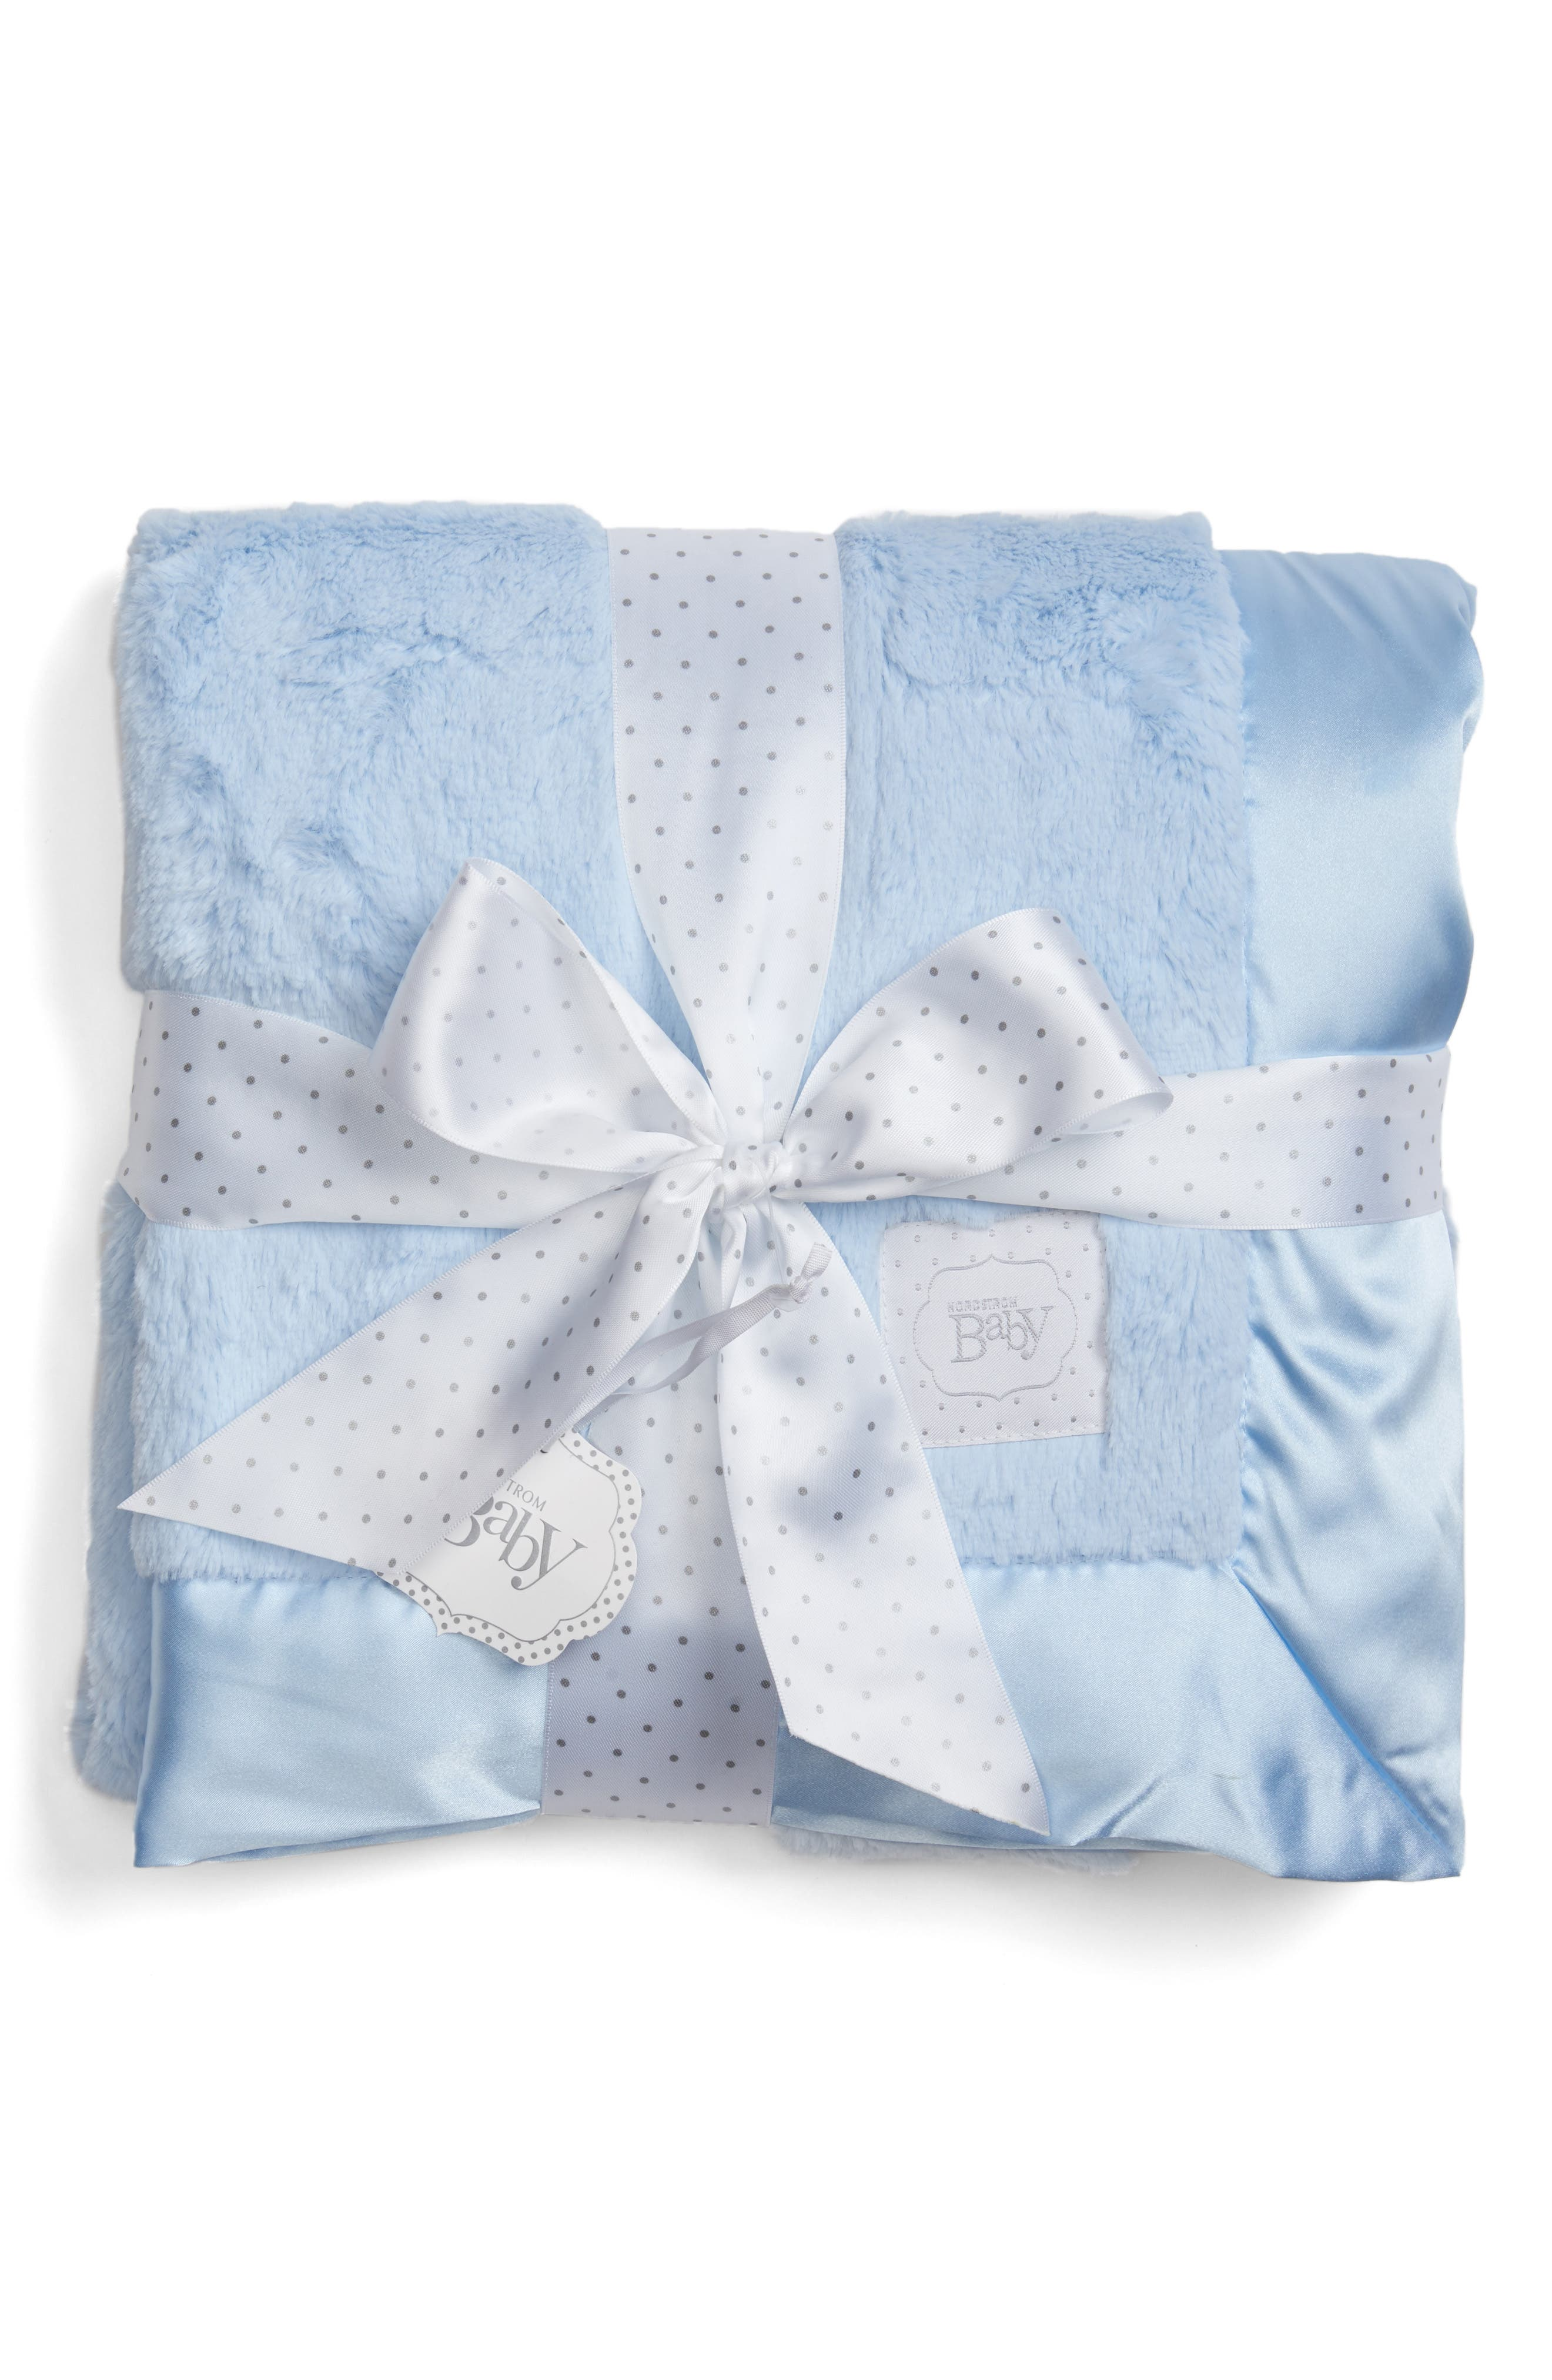 Nordstrom Baby Luxe Plush Blanket